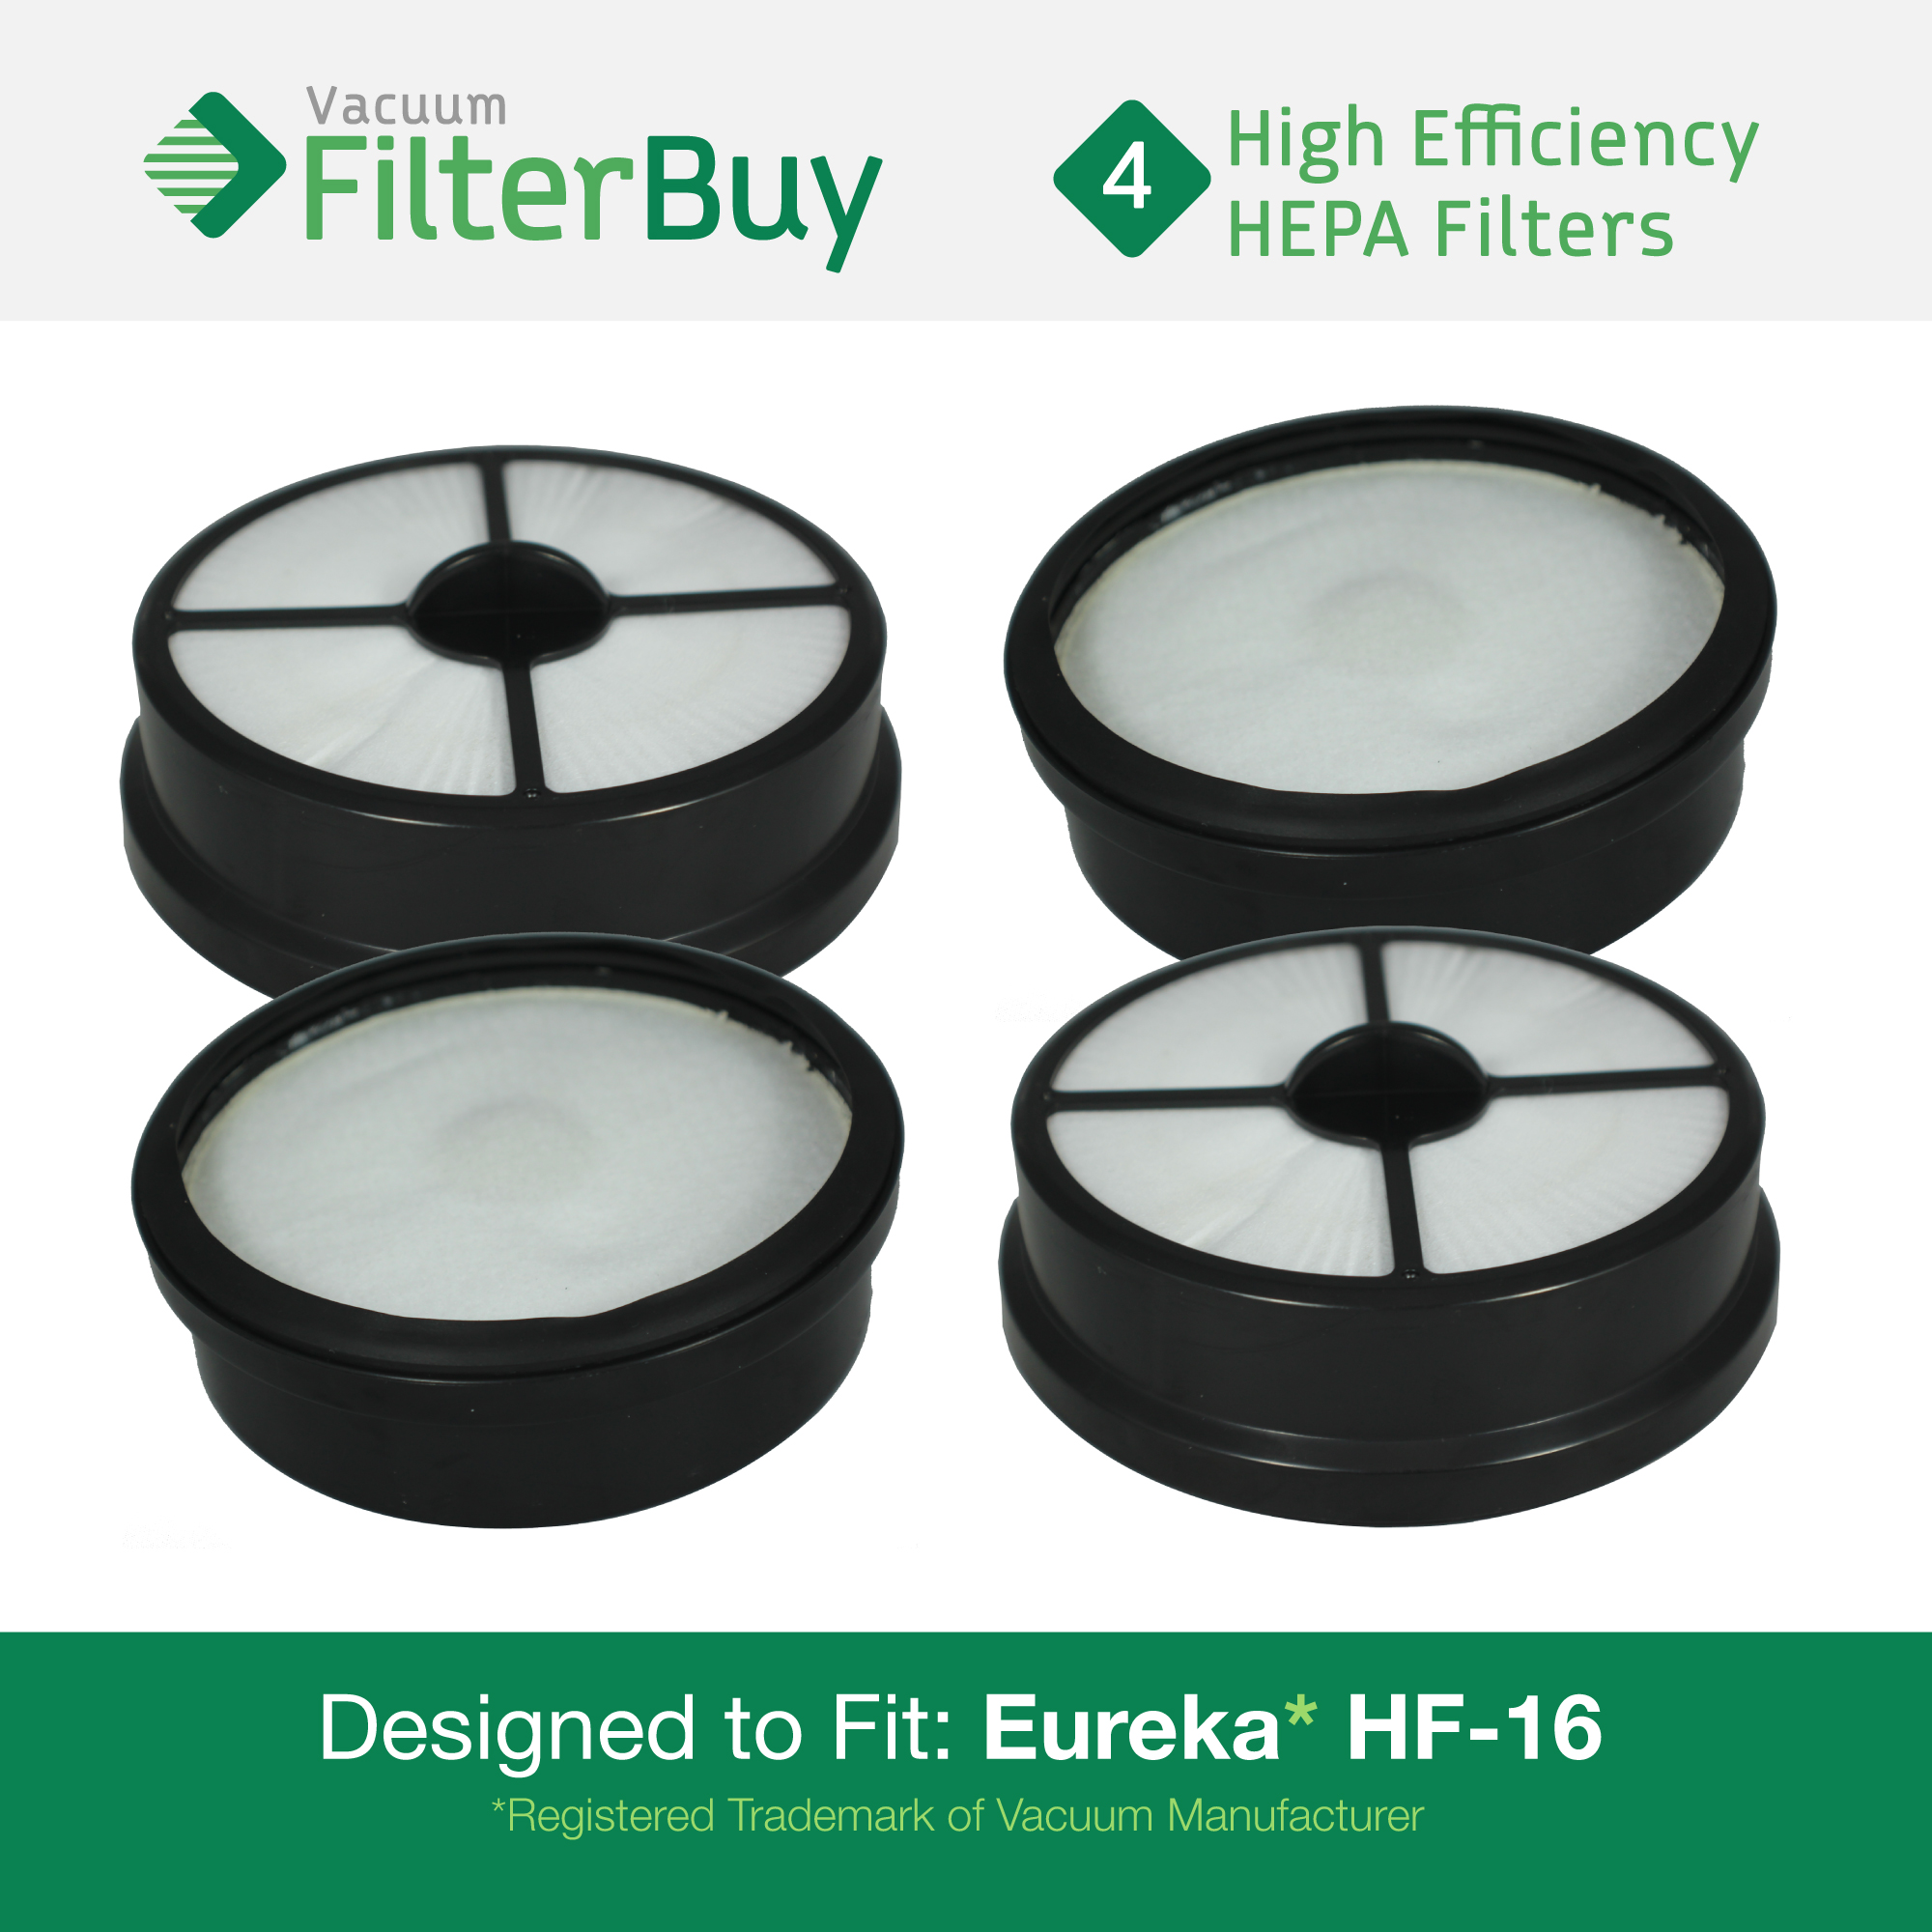 4 - Eureka HF-16 (HF16) HEPA Replacement Filters, Part #'s 68115, 68715, 68115A & 67806.  Designed by FilterBuy to fit Eureka Air Speed Zuum AS5203A Upright Vacuum